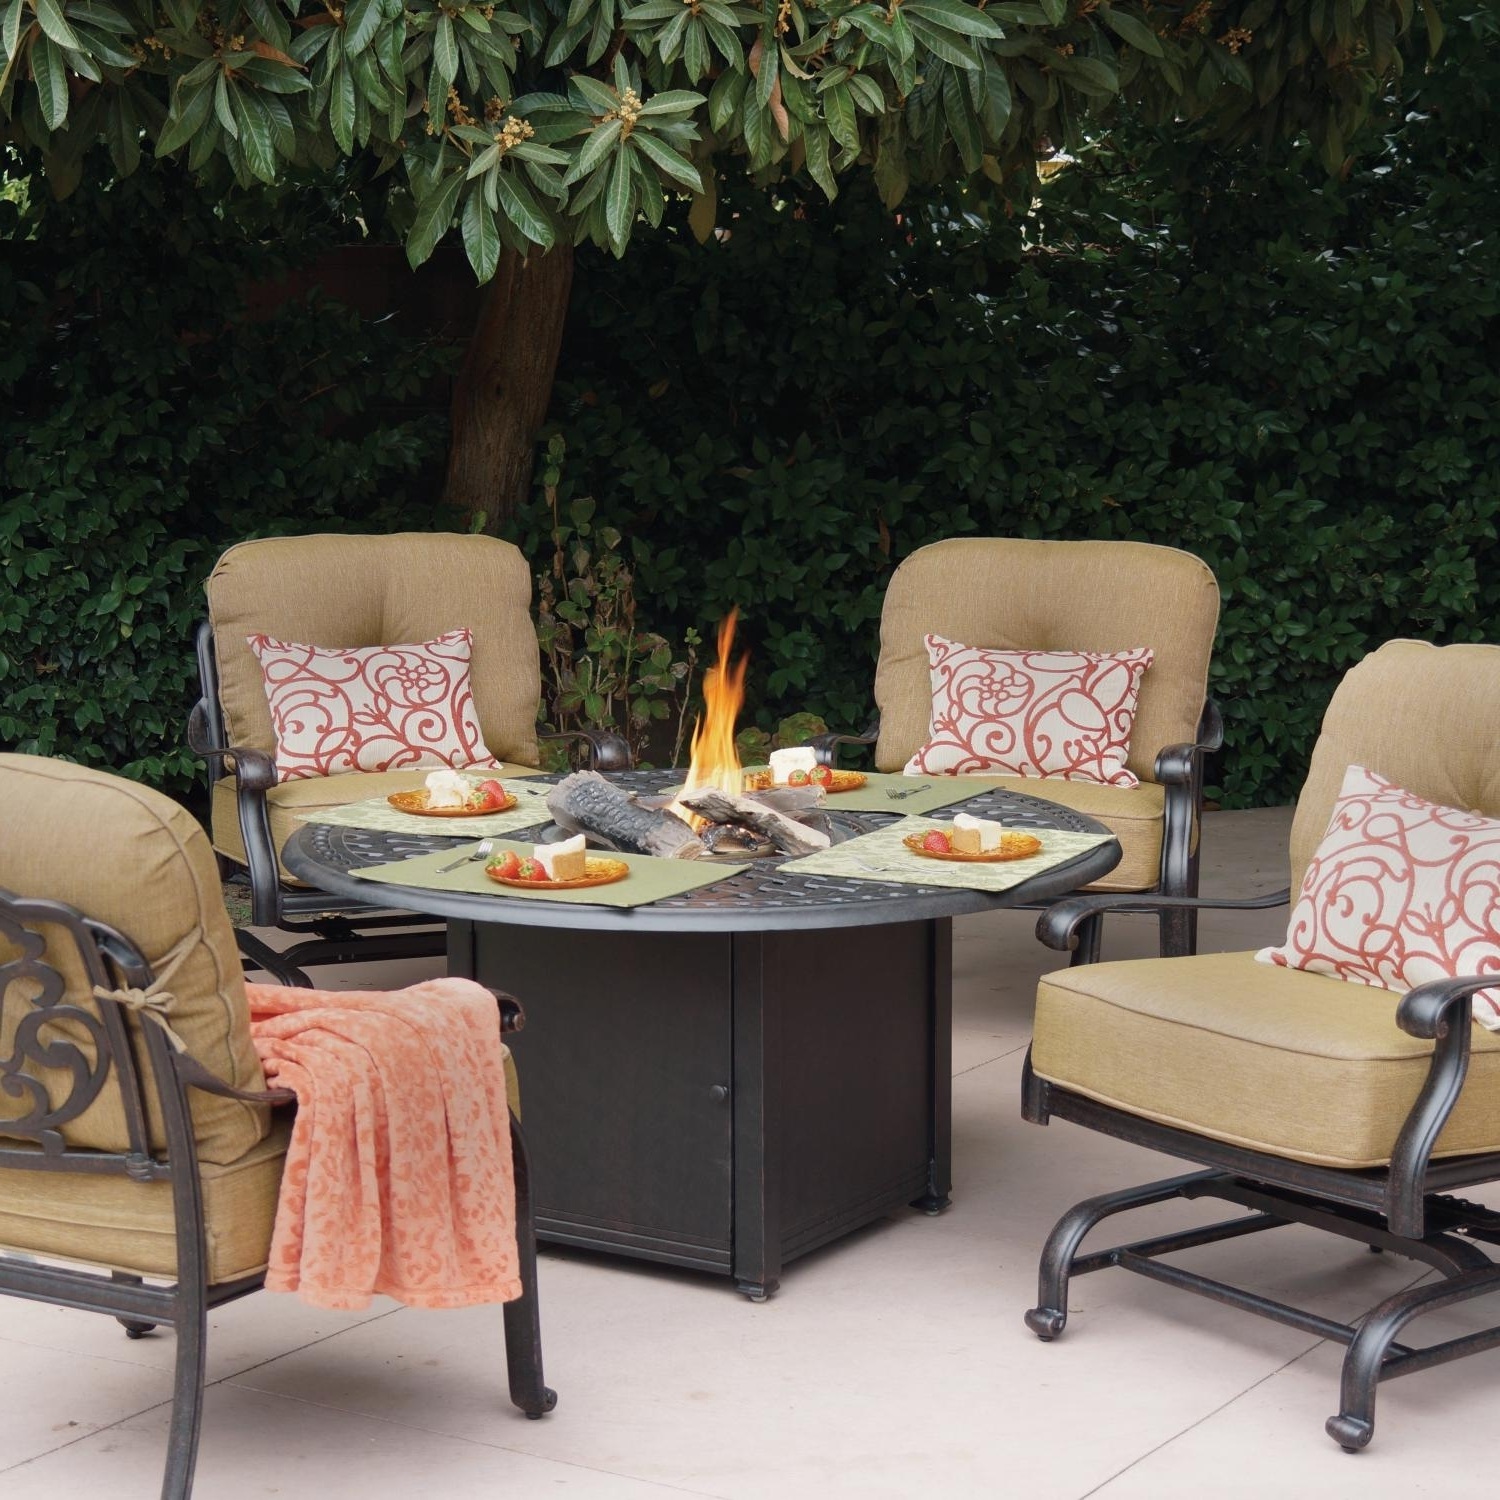 Patio Conversation Sets With Fire Table Throughout Fashionable Patio Ideas: Patio Sets Fire Pit Table With Ceramic Table Material (View 12 of 20)